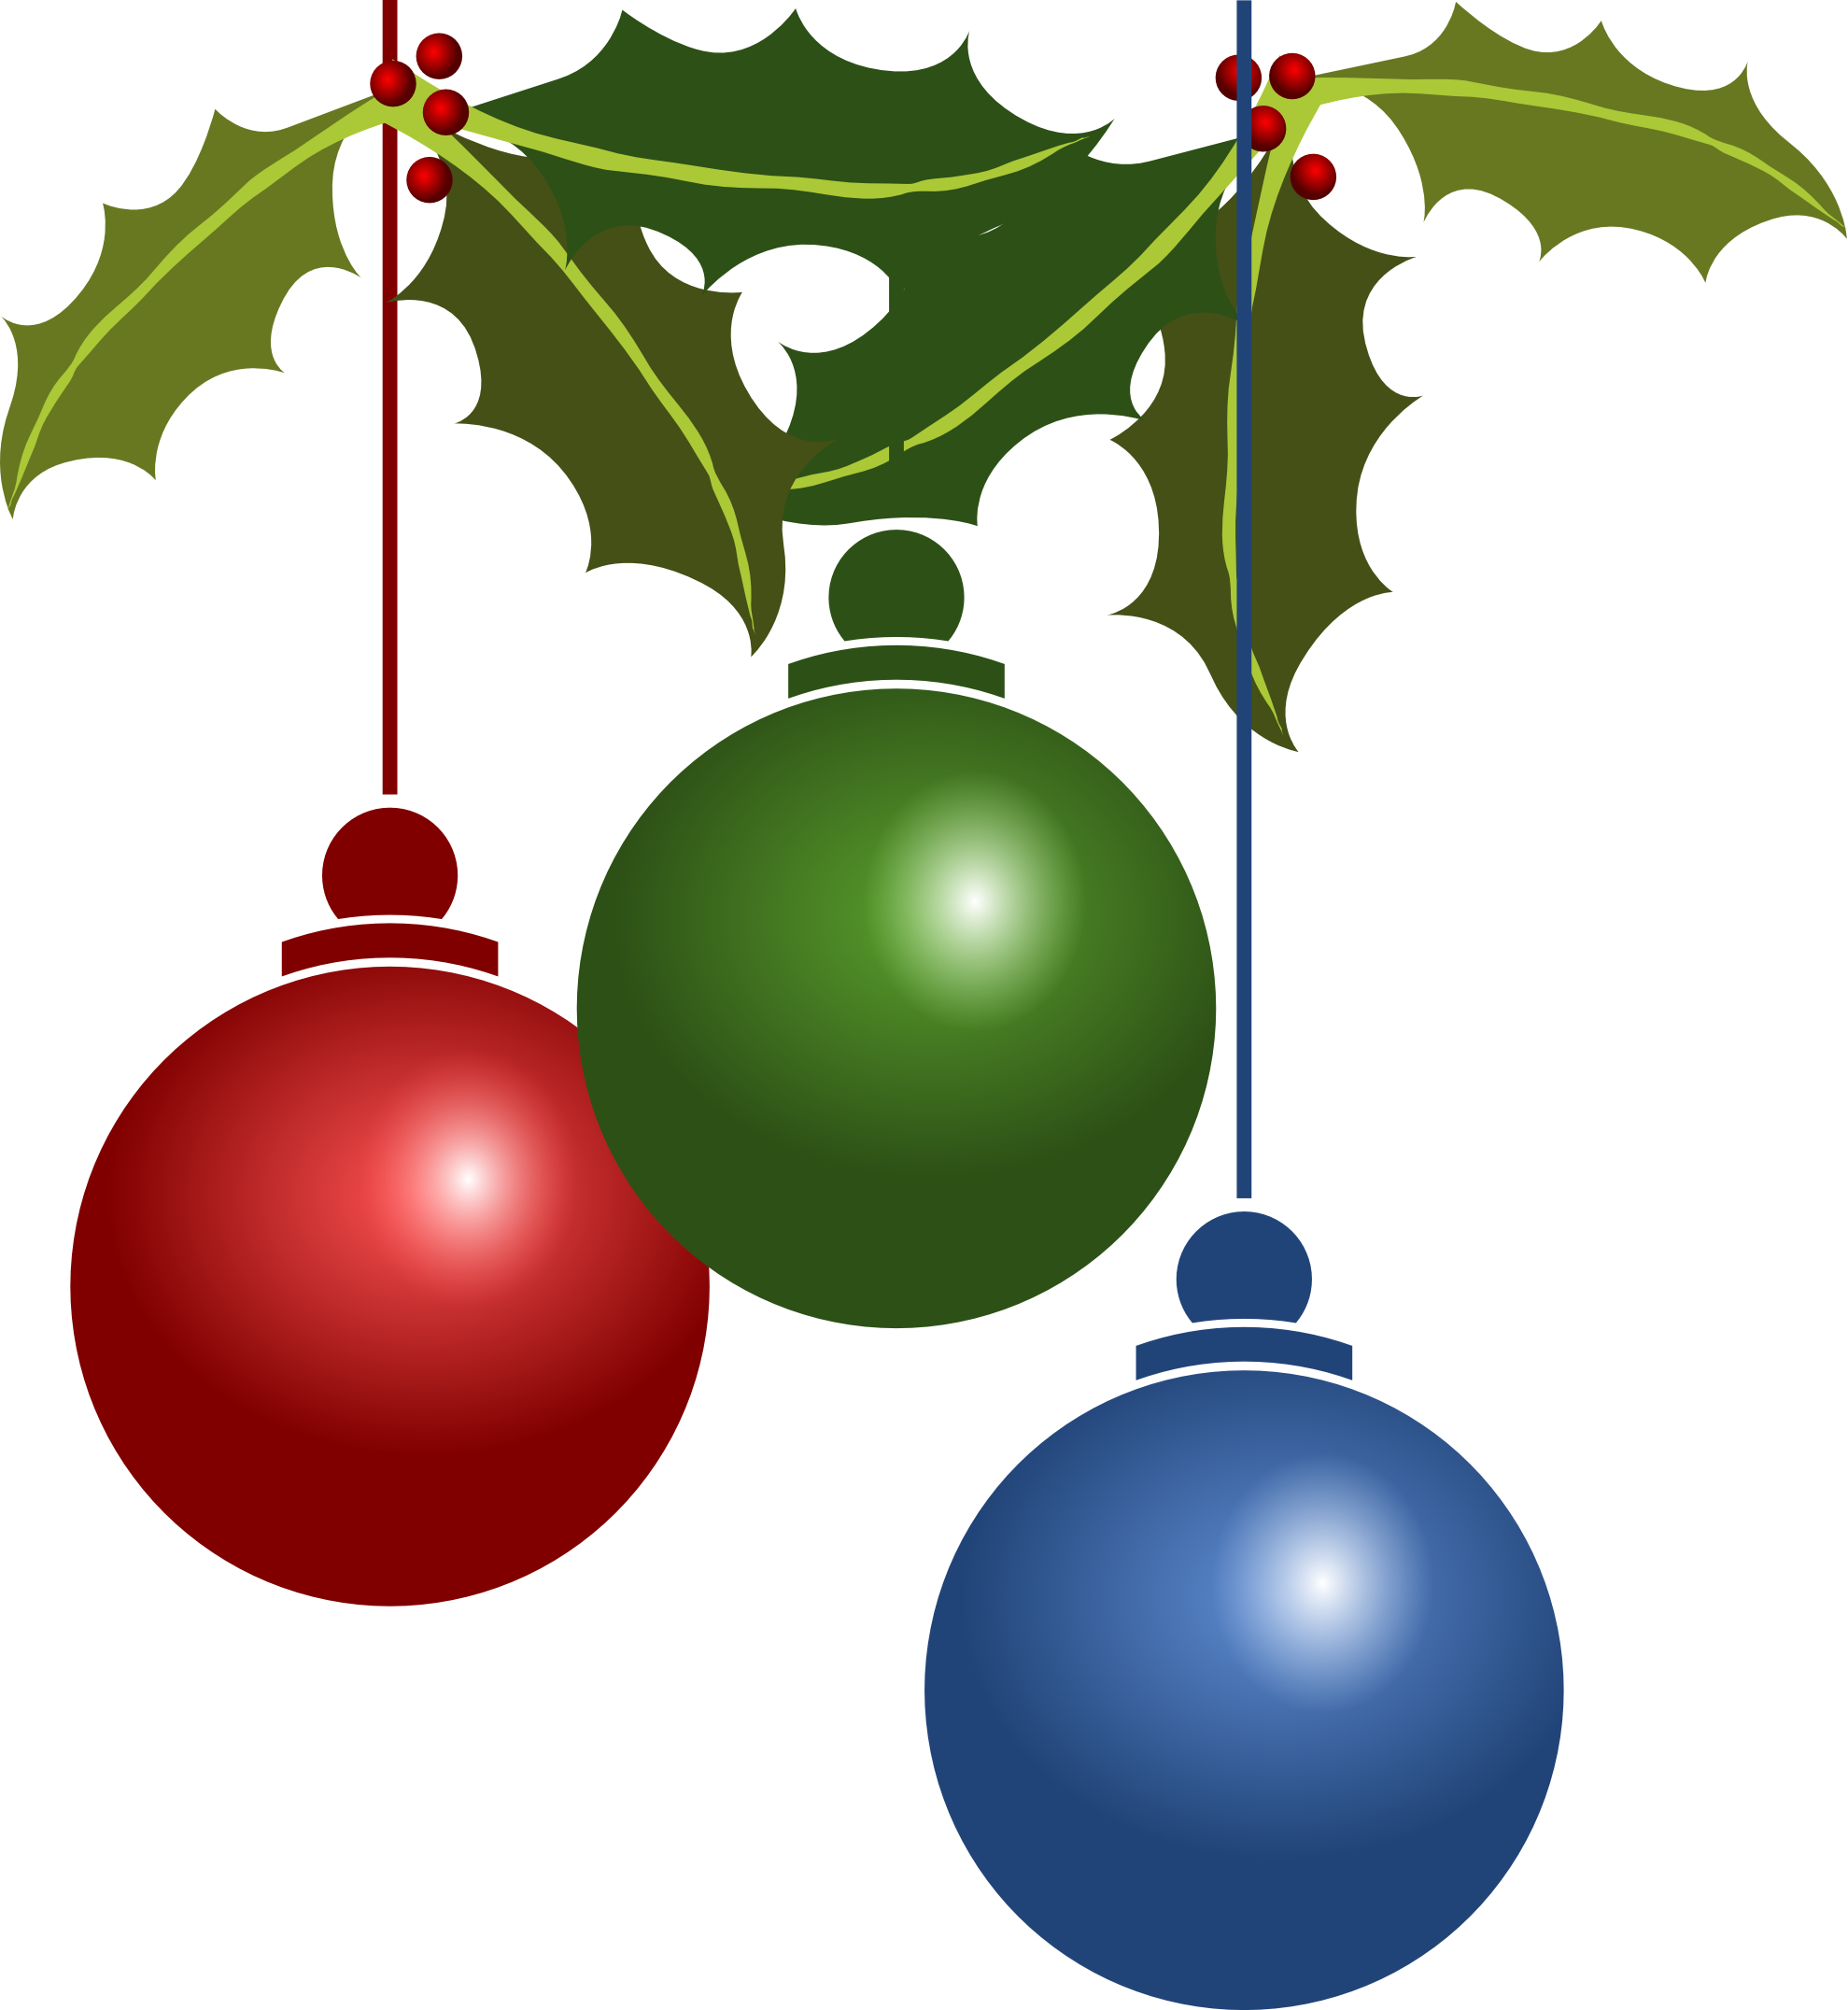 Christmas Ornament Clipart Bcybbkdcl Png-Christmas Ornament Clipart Bcybbkdcl Png-16